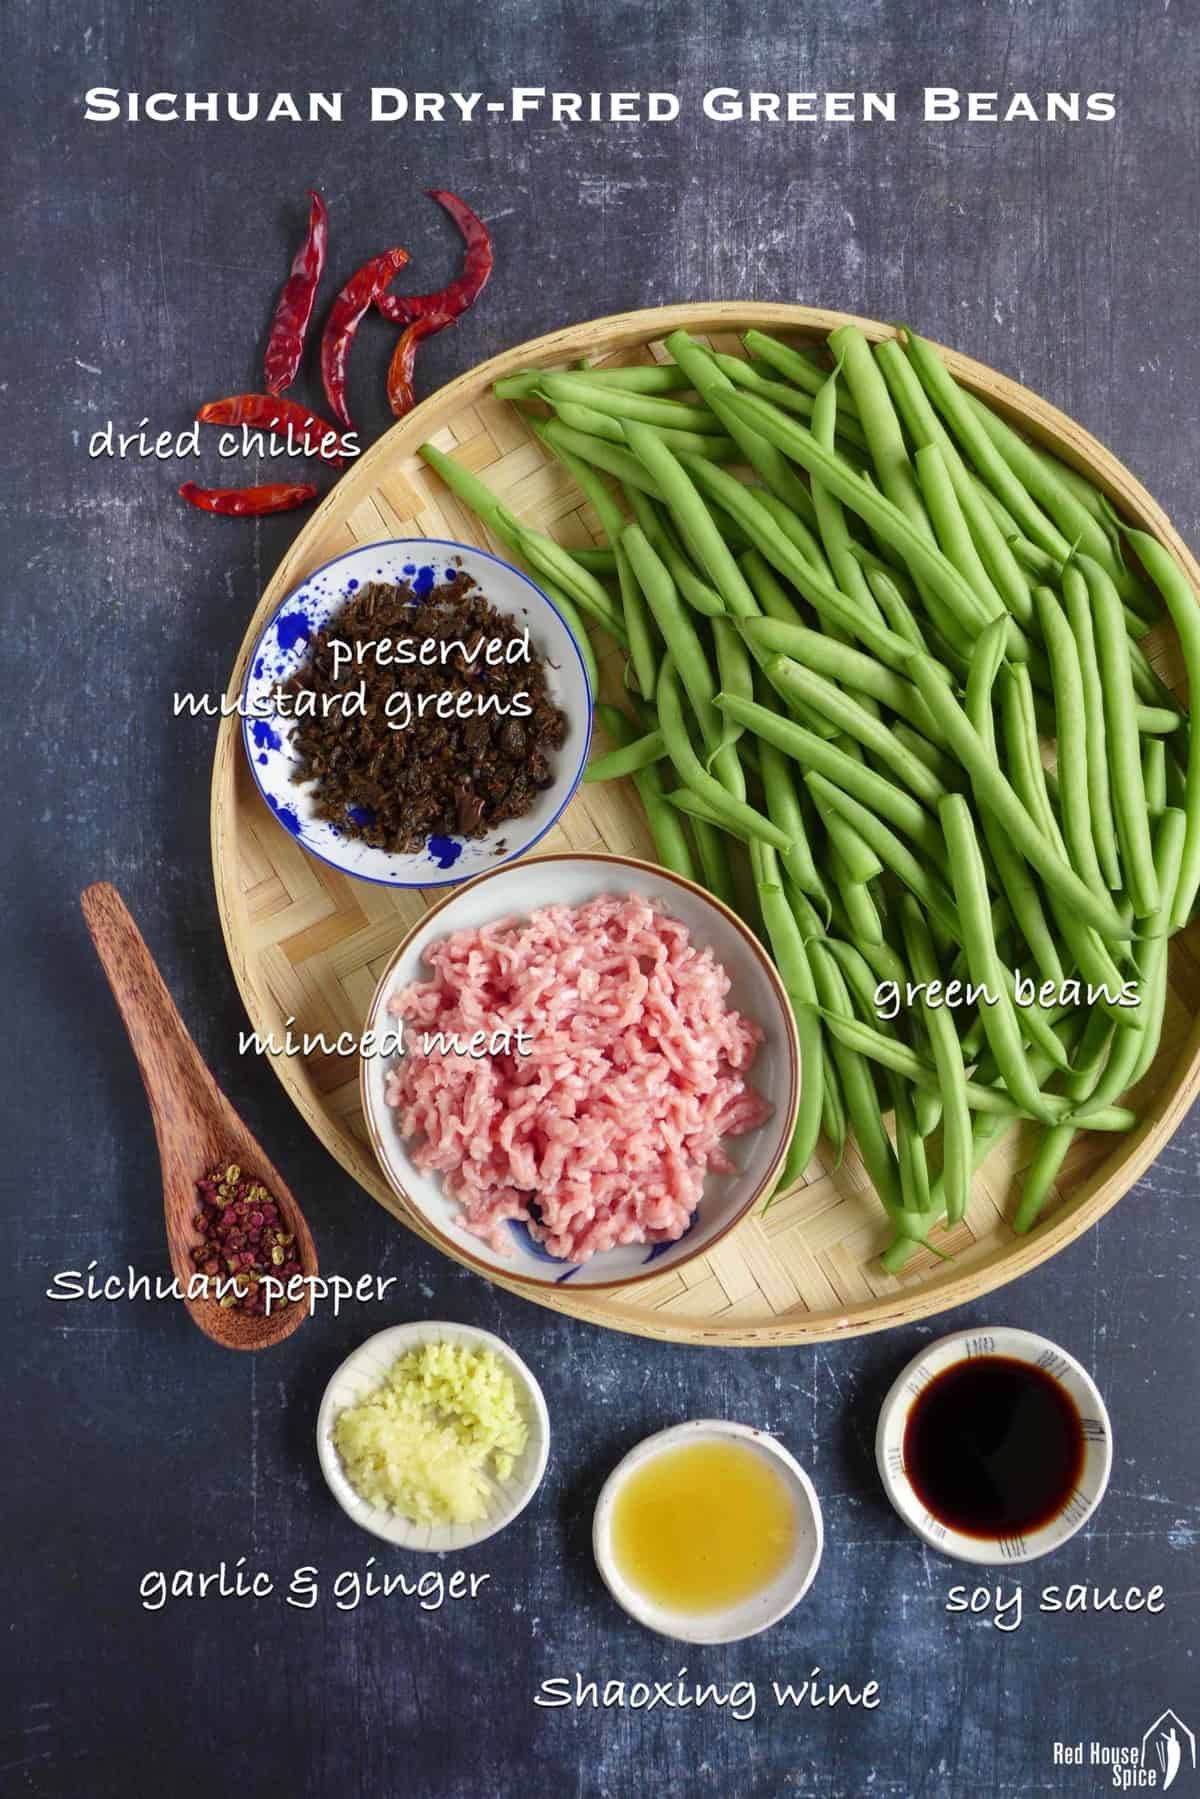 raw ingredients for cooking Sichuan dry fried green beans.